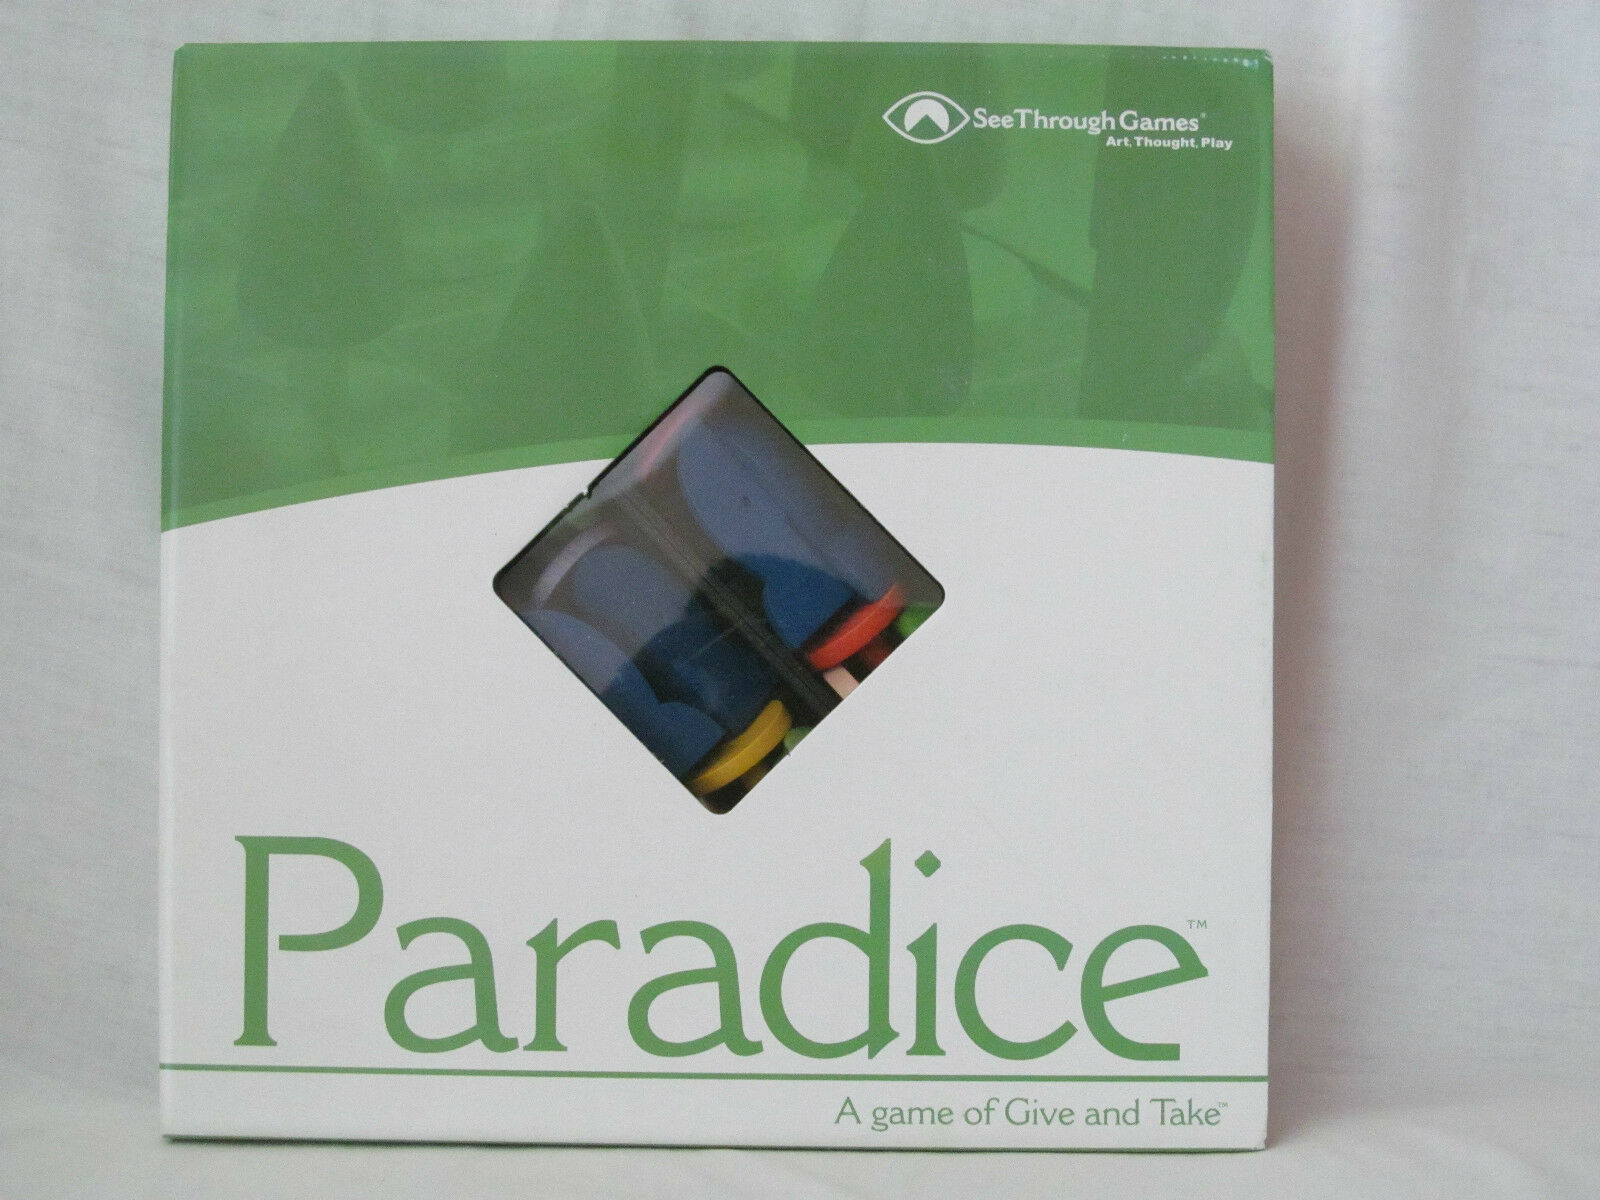 New Paradice Board Game by See Through Games for Conscious Living Educational